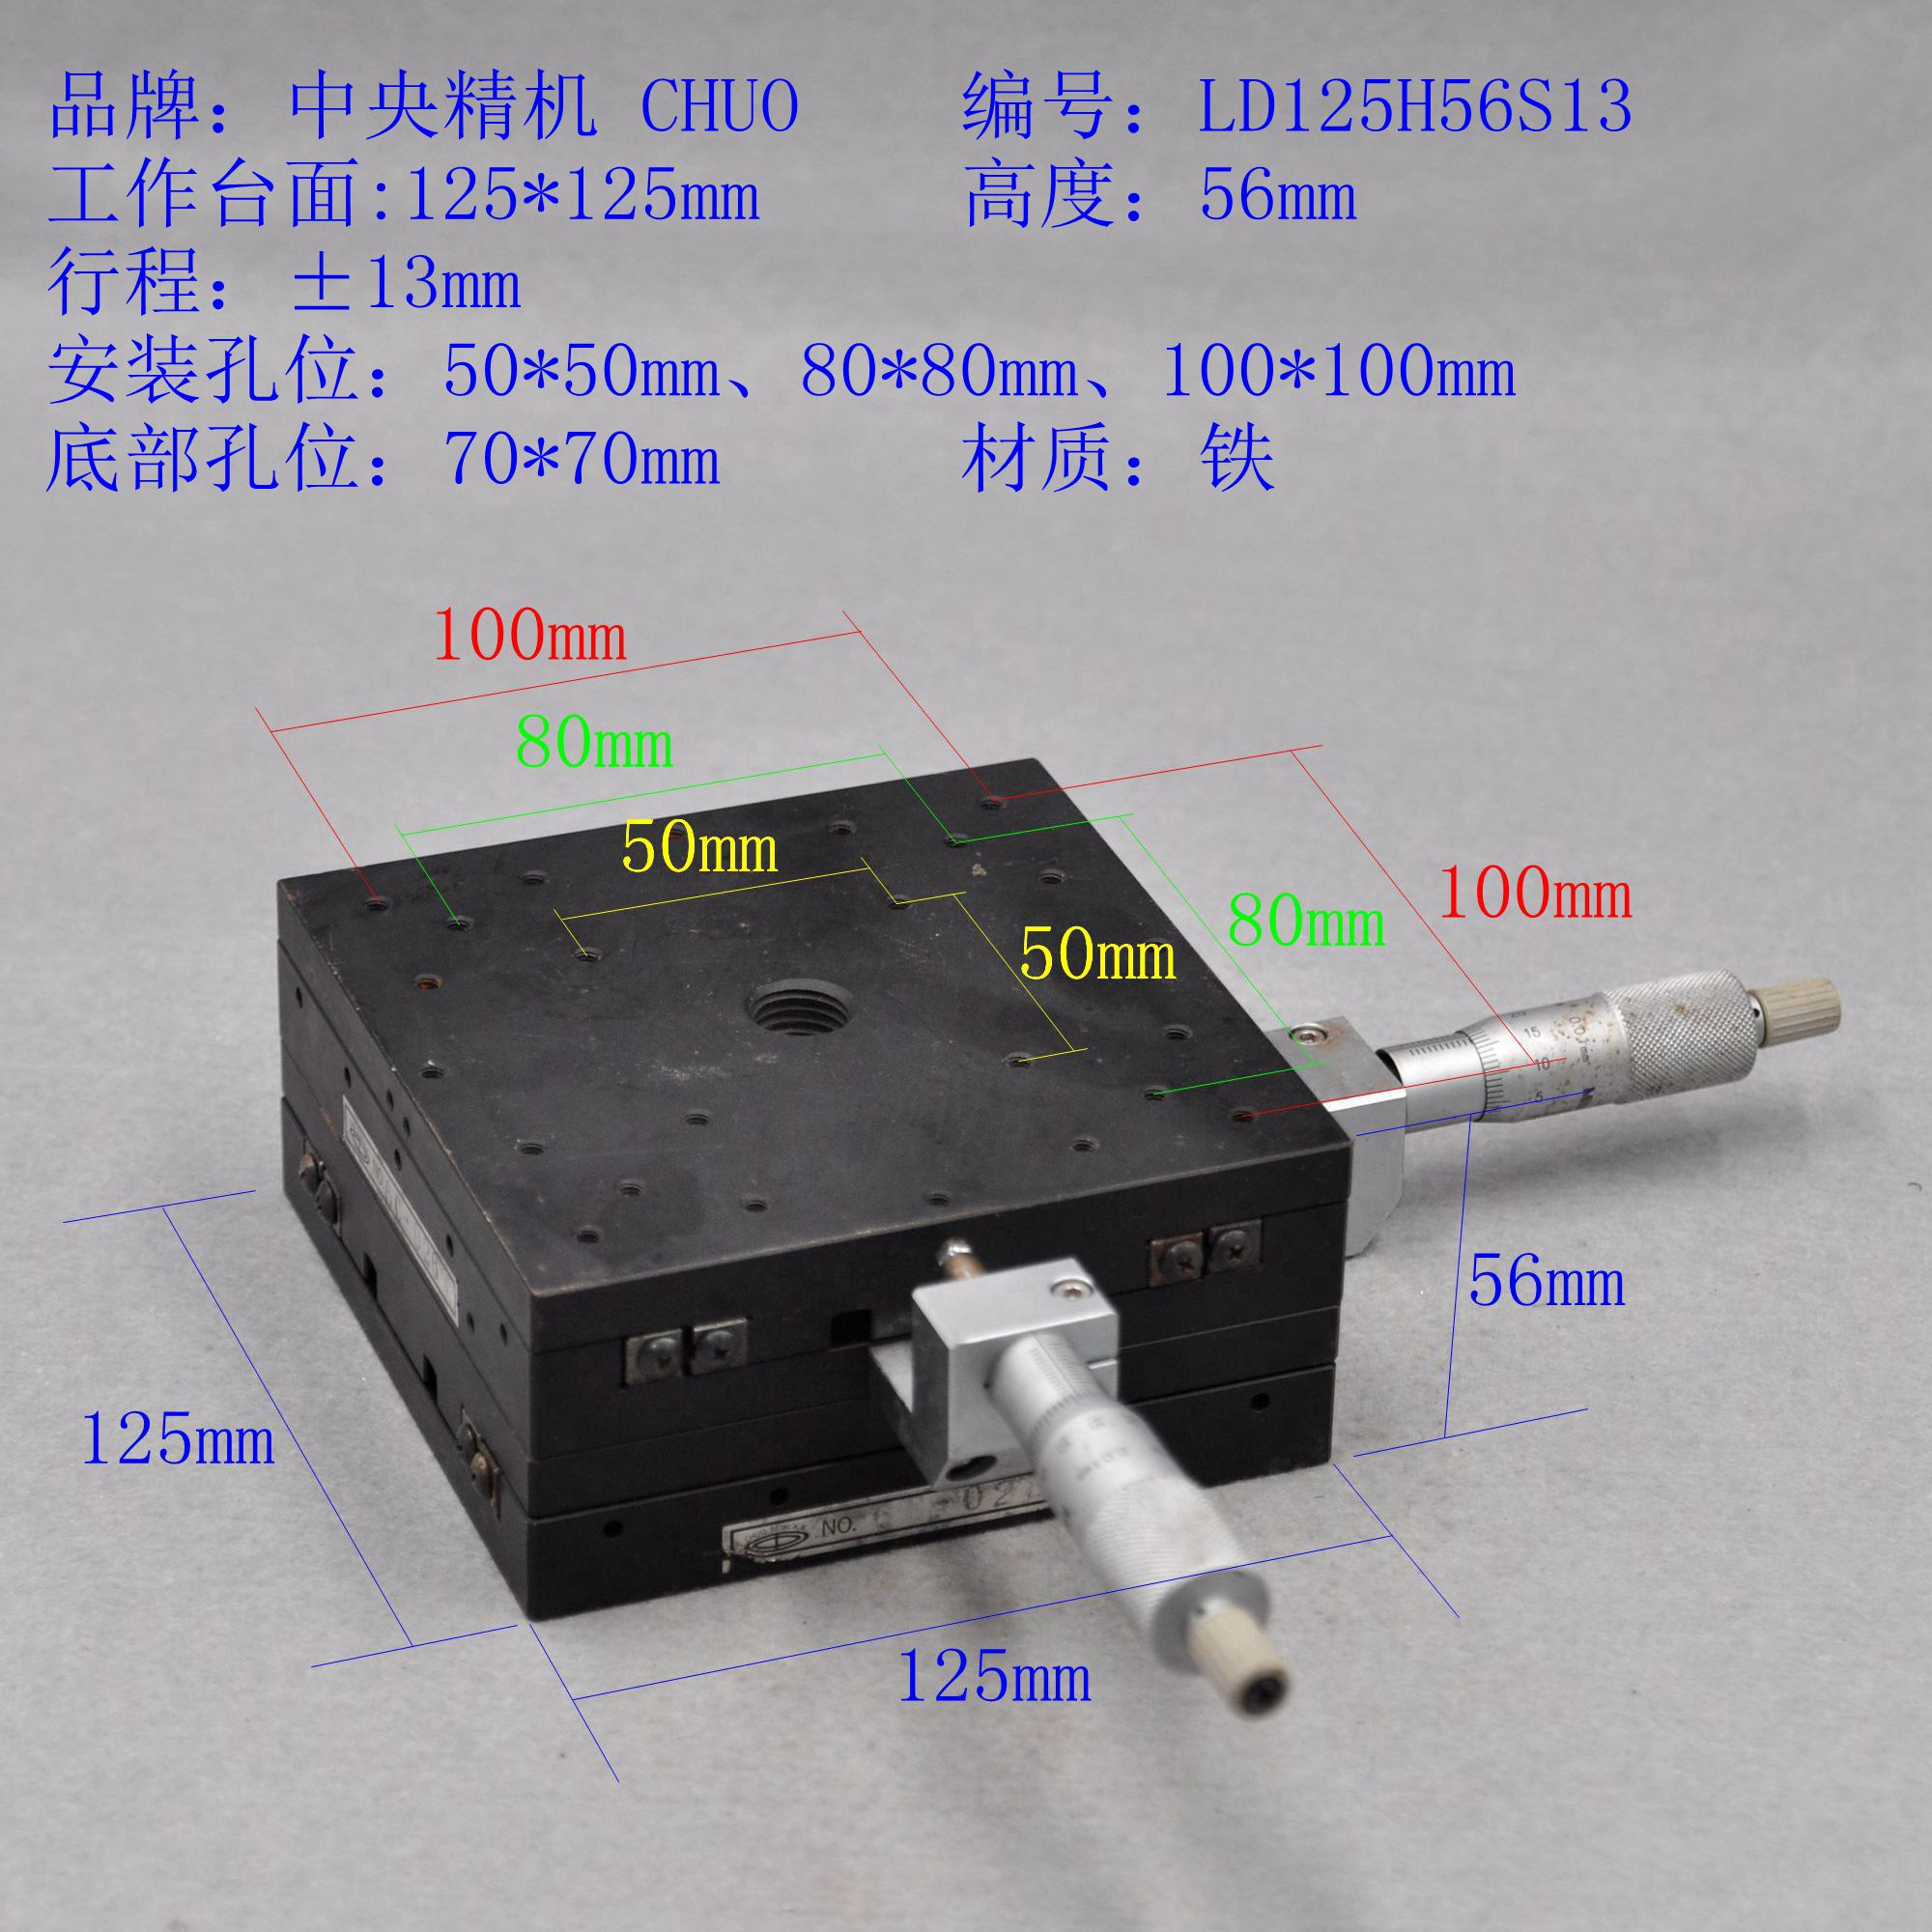 CHUO XY axis two-dimensional 125*125mm table manual optical displacement platform cross rail fine-tuning slide enlarge